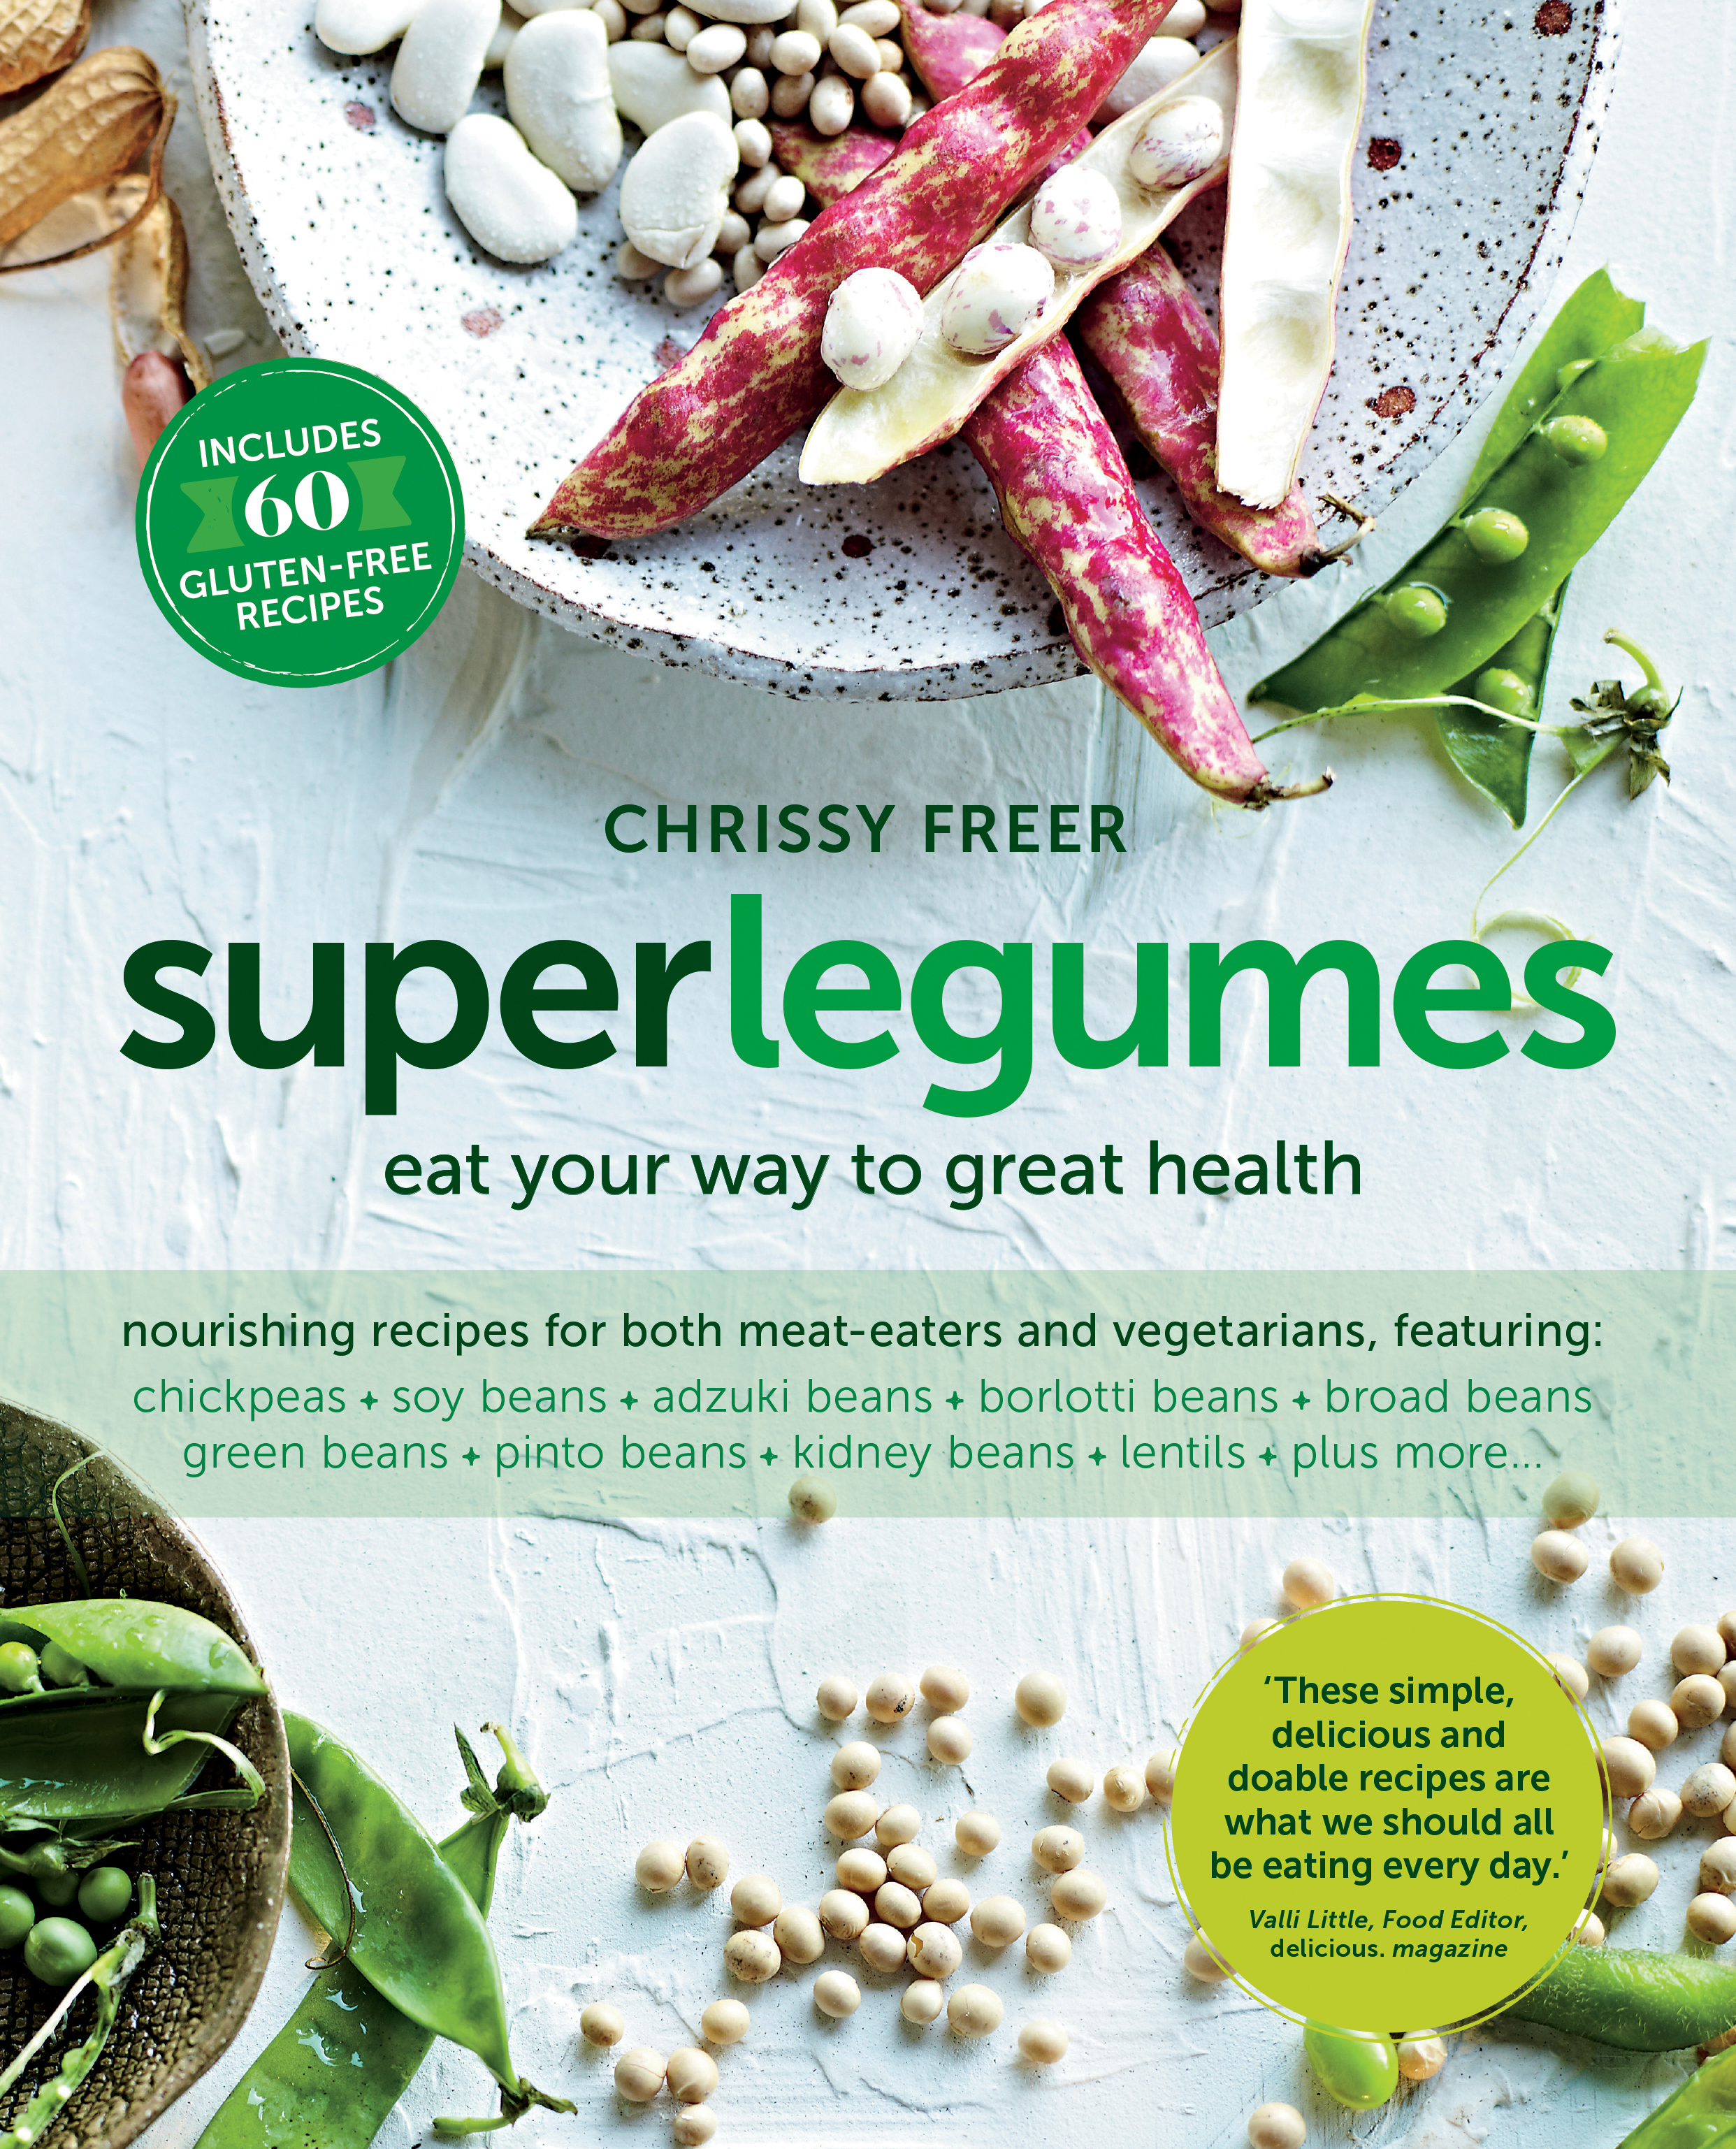 Ckb039000 wb 21 12 wbh 01 healthy everyday ayurvedic recipes for an for an amazing new you 03 ieat right for your shape itakes a fresh look at the ancient indian healing system of ayurveda and applies it to the way fandeluxe Images